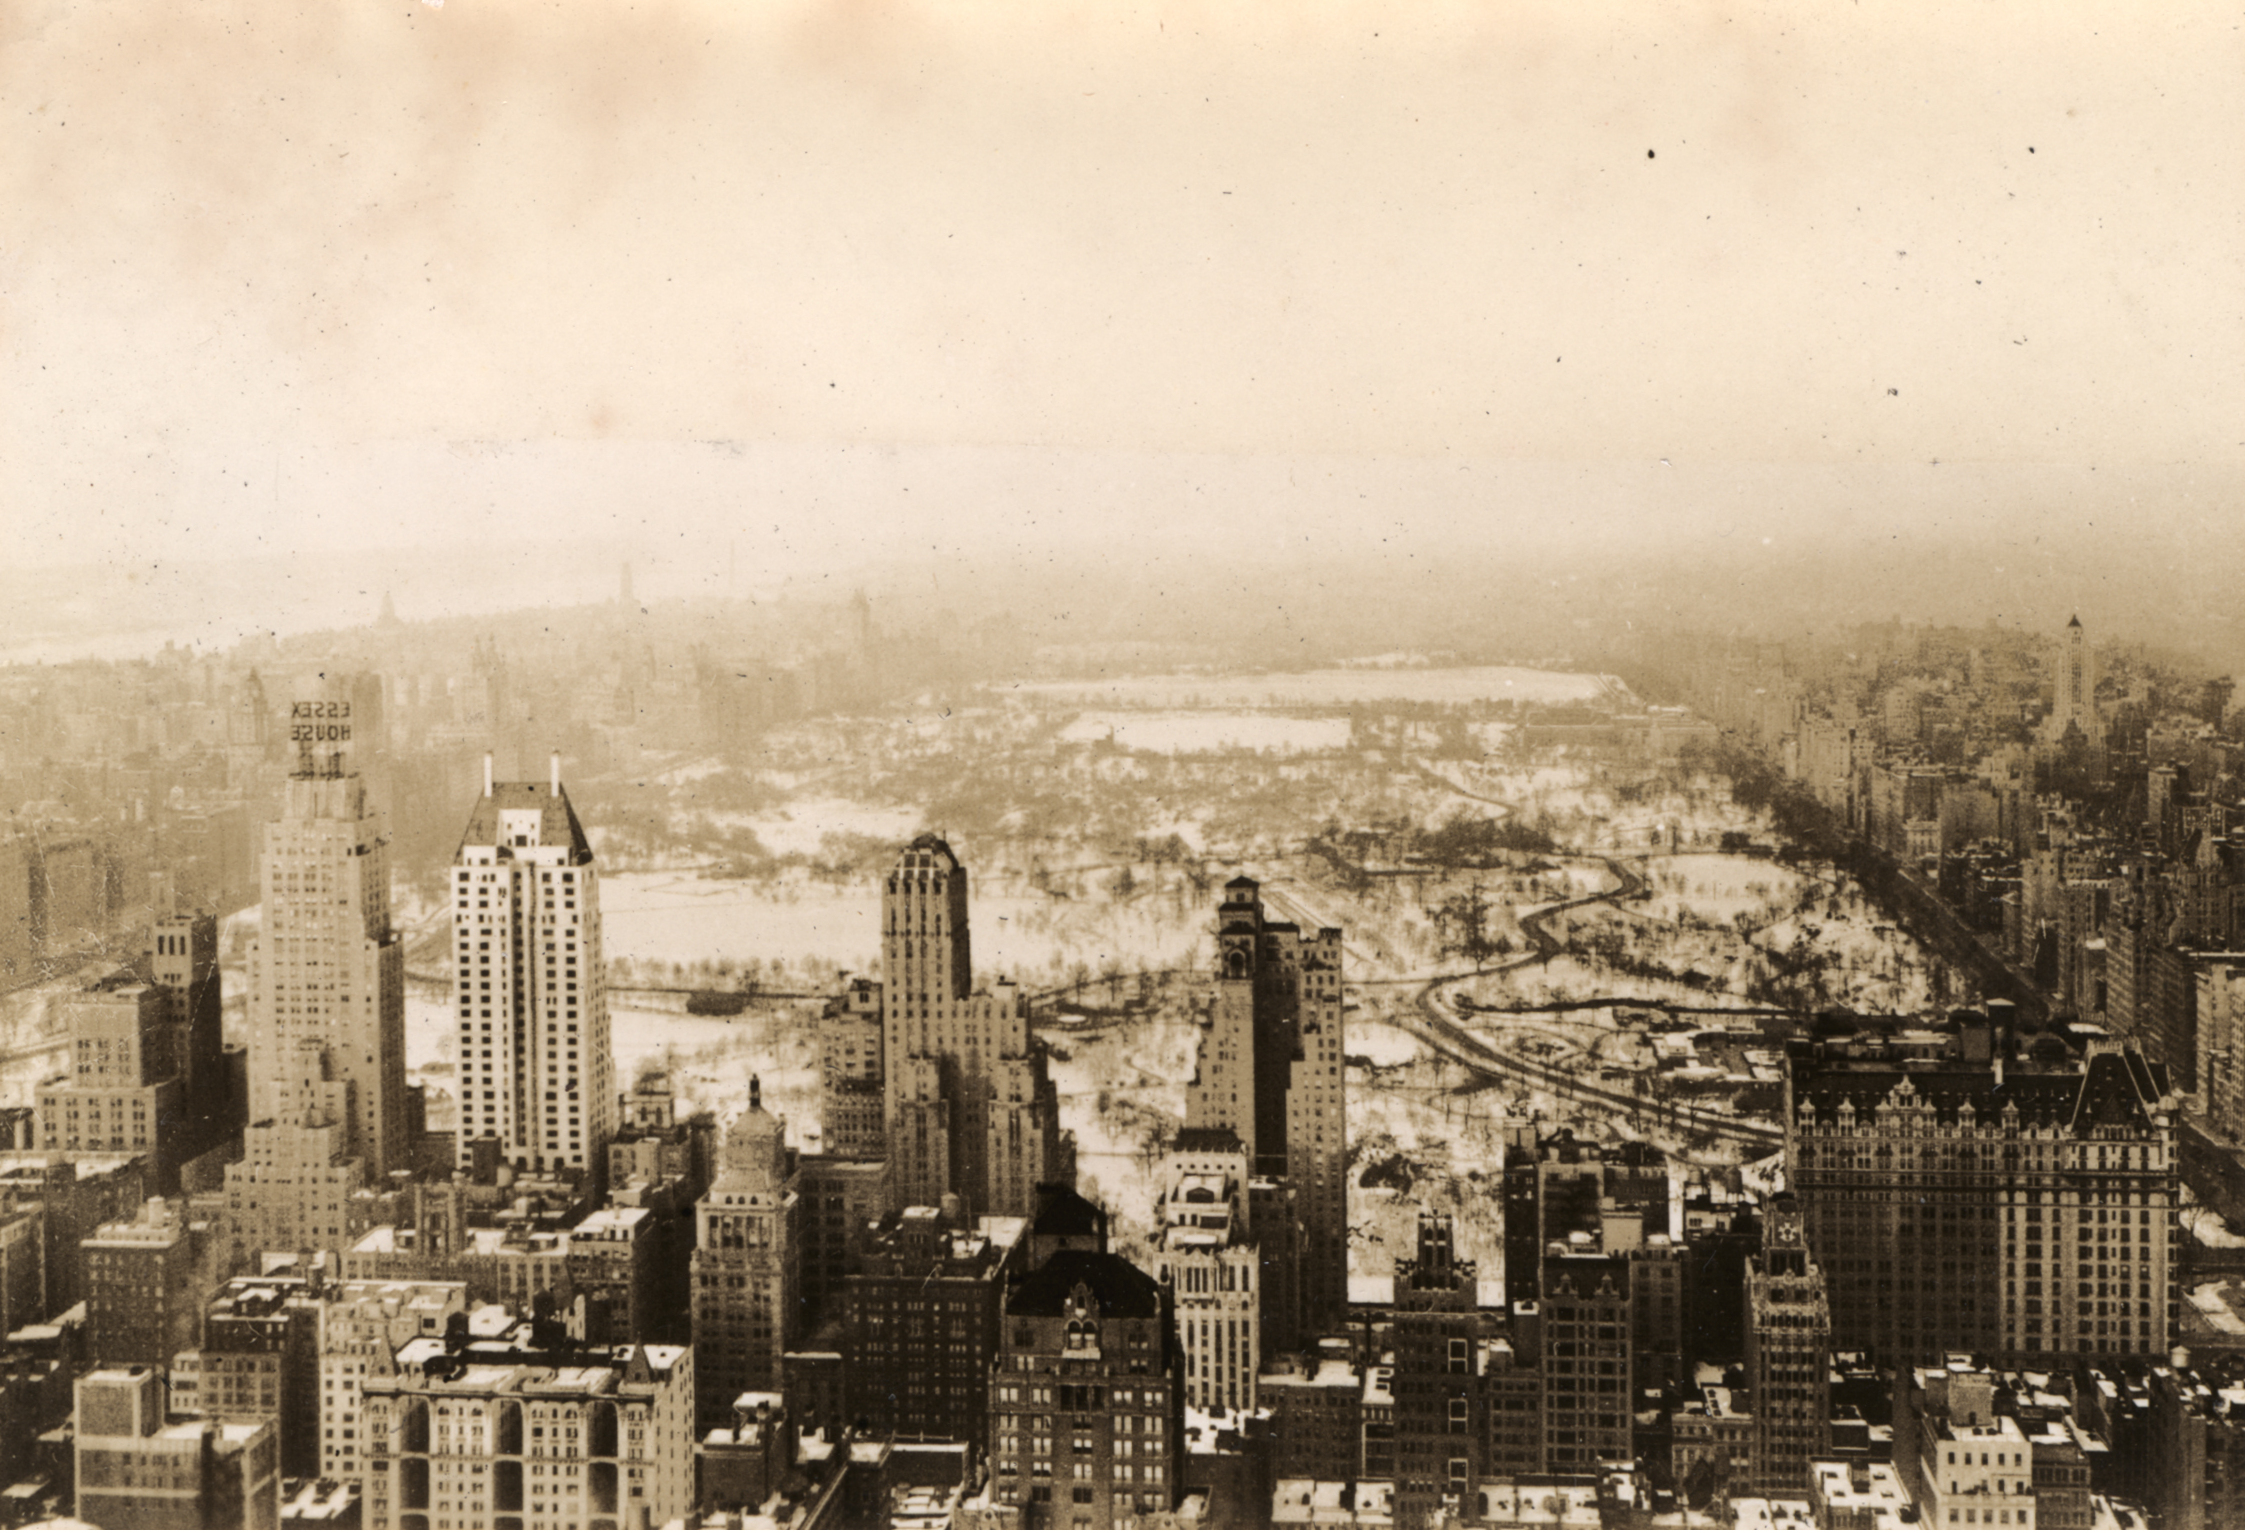 Archivo:New York City Central Park from Rockefeller Center NIH.jpg